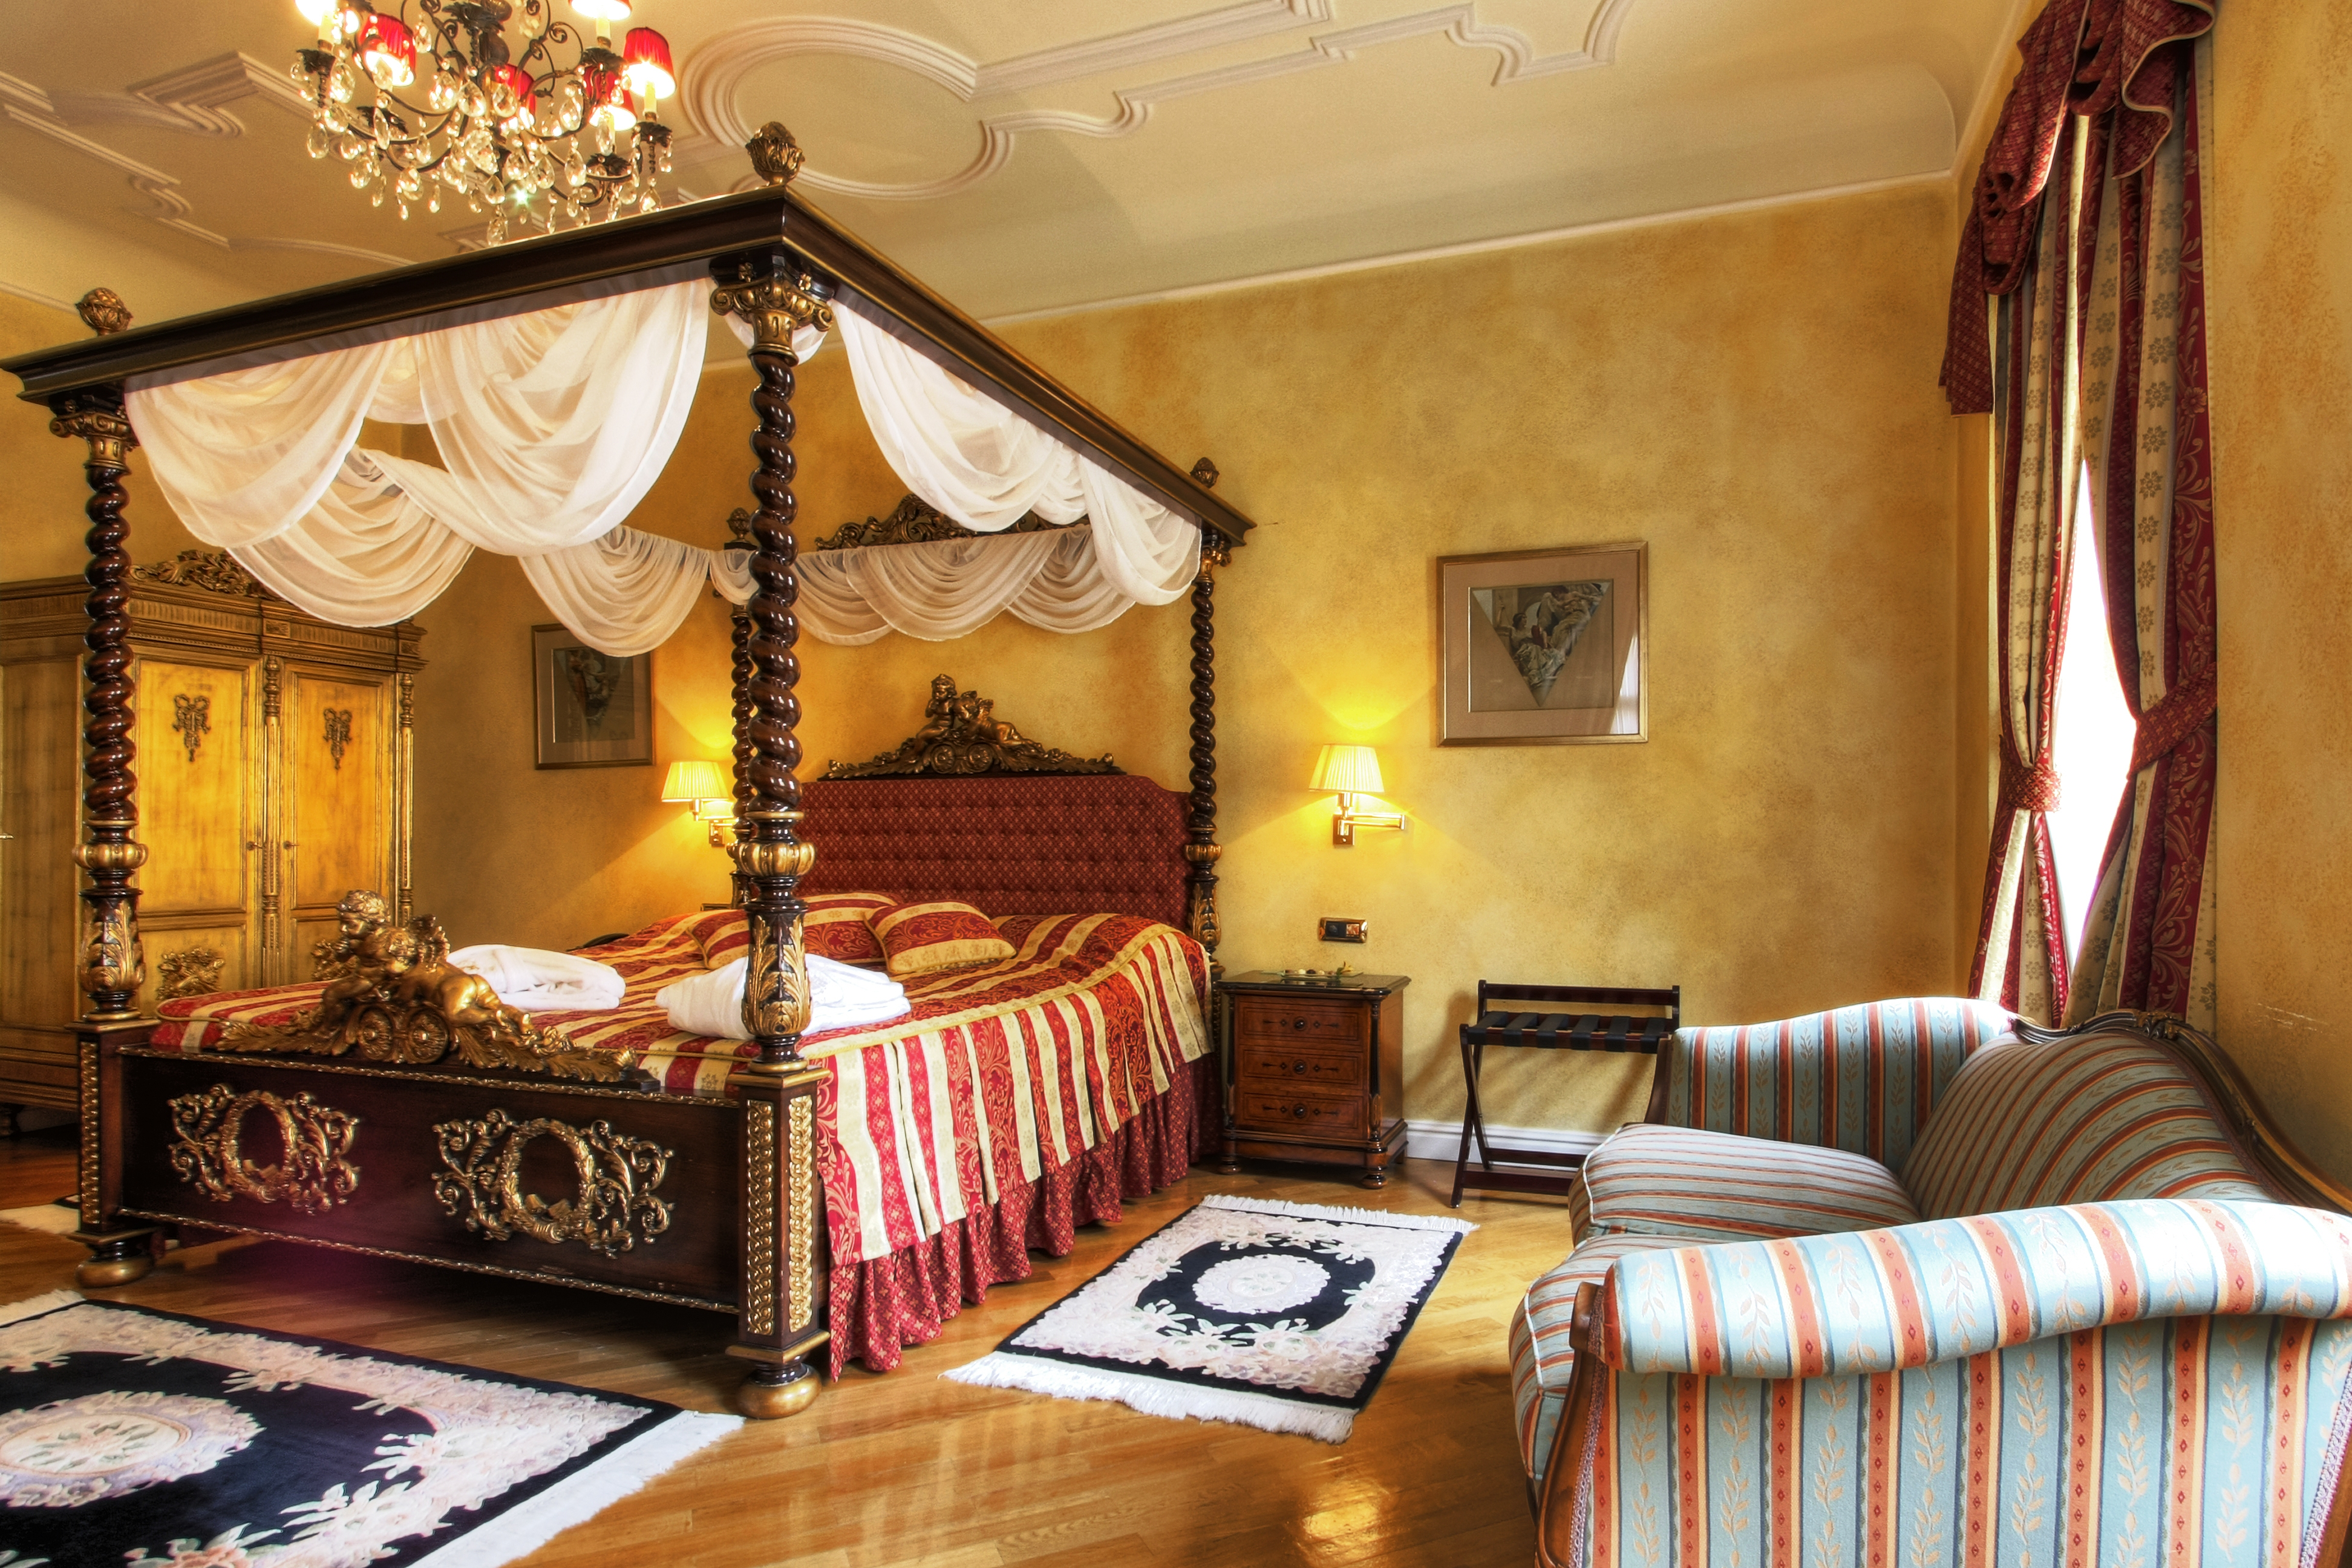 Luxury boutique hotel located in the most charming area of Prague, only few steps from famous Charles Bridge and Prague castle